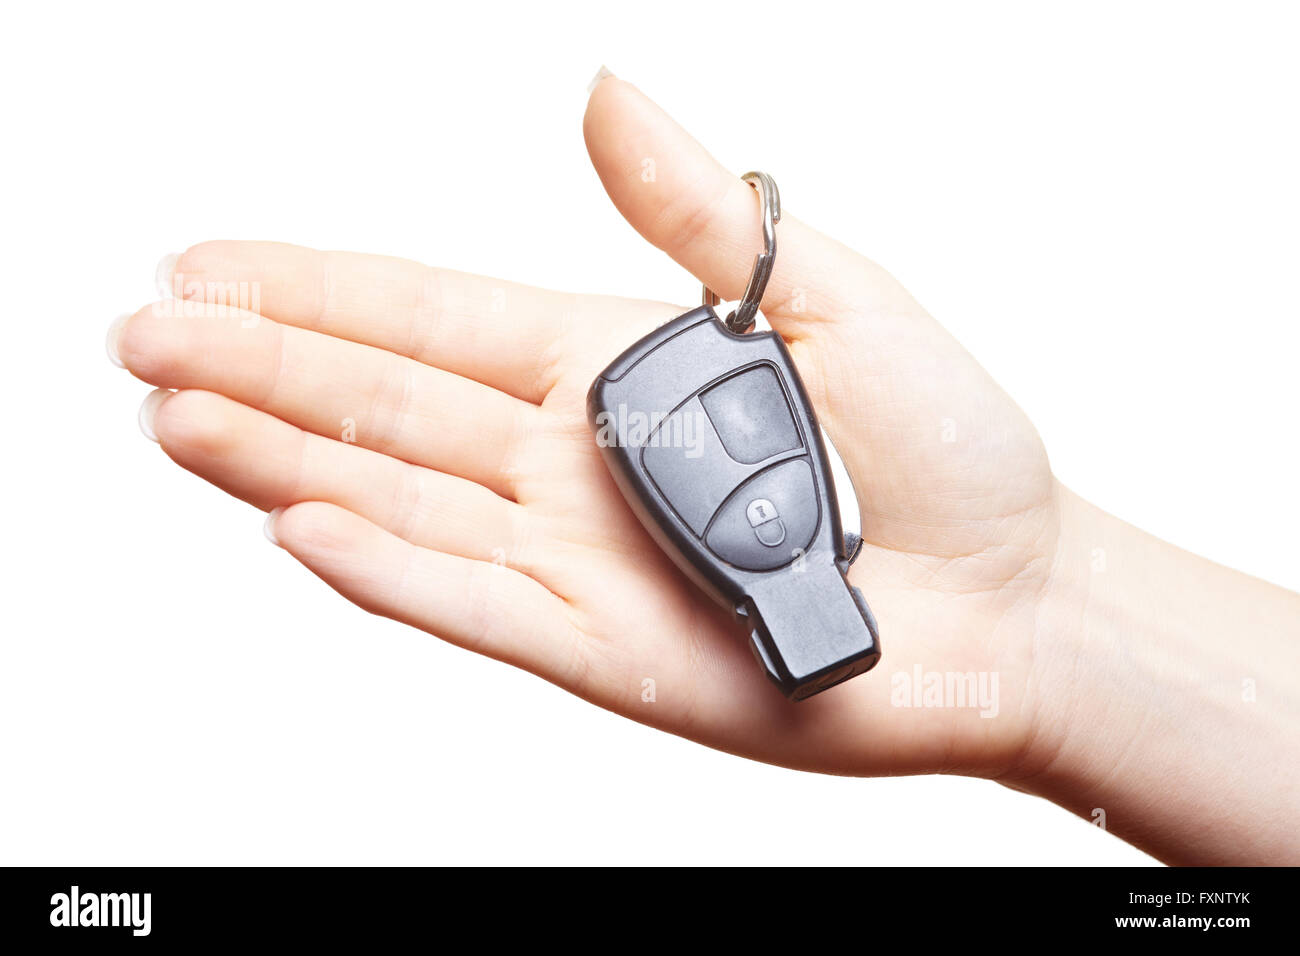 Female hand holding car keys in the palm - Stock Image